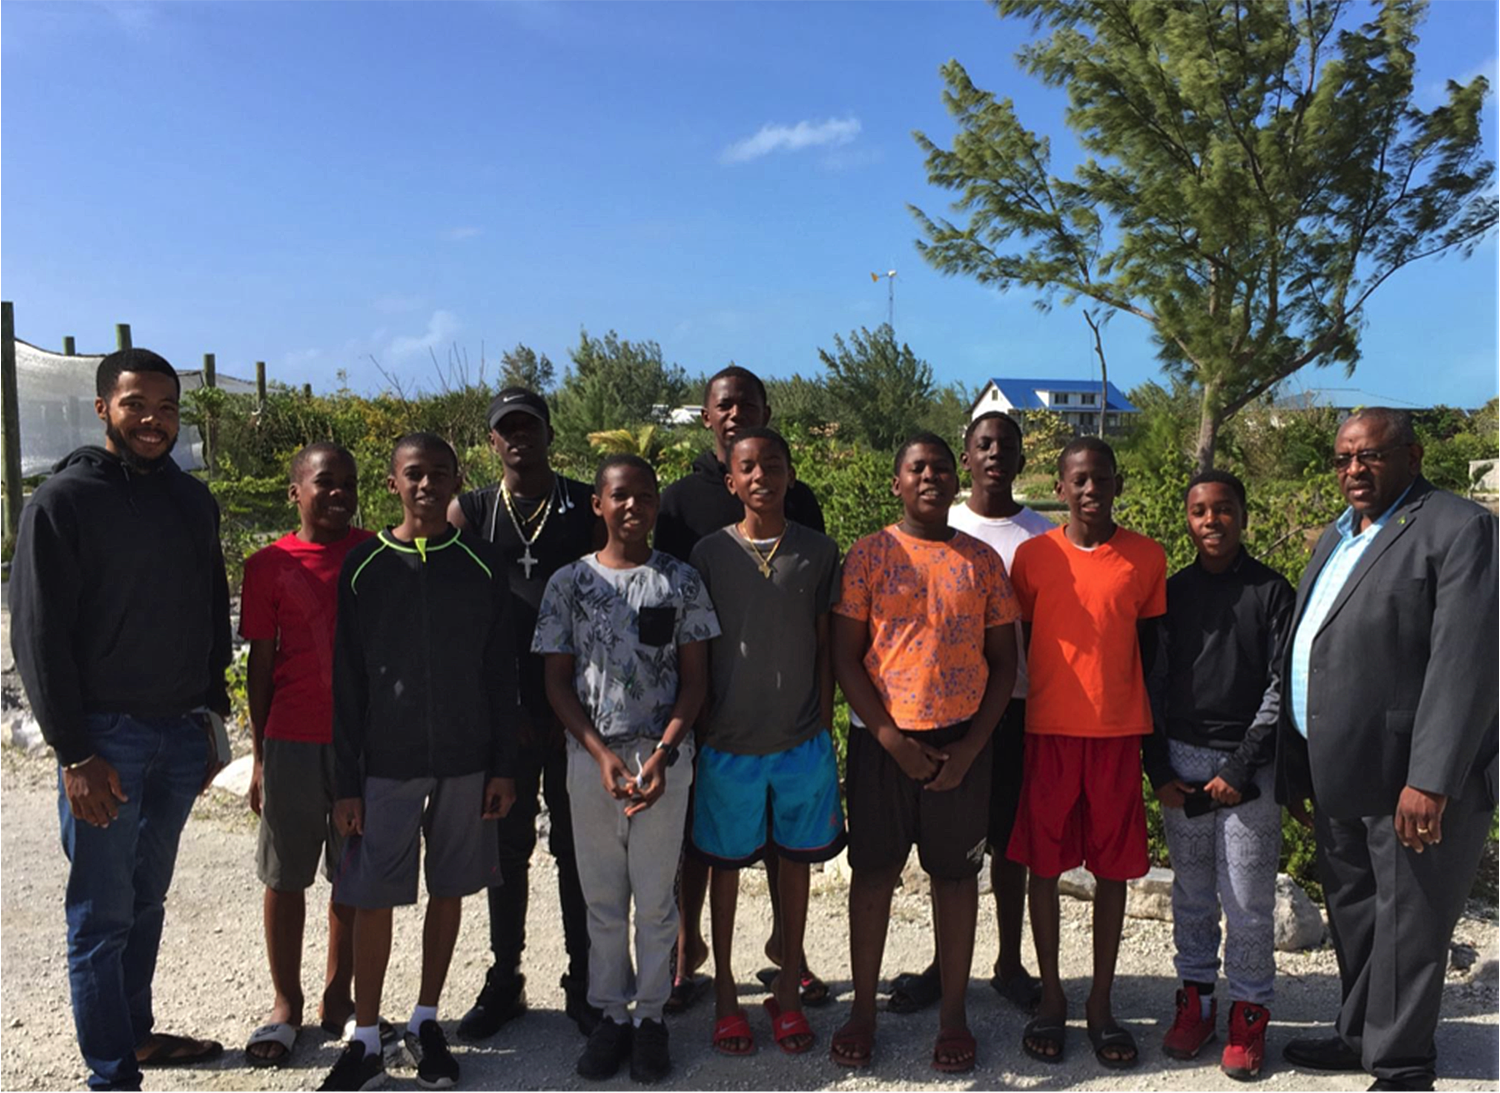 The Young Men's Leadership Program with The Honorable Hank Johnson on The Island School campus. (From left to right: Stan Burnside, Shicardo Knowles, Ethan Forbes, Theondre Ferguson, Kiyano Butler, Alex Young, Nathan Cambridge, Tashon Hall, Demiko Pratt, Alvanno Winder, Clement Thompson Jr., Hon Hank Johnson)